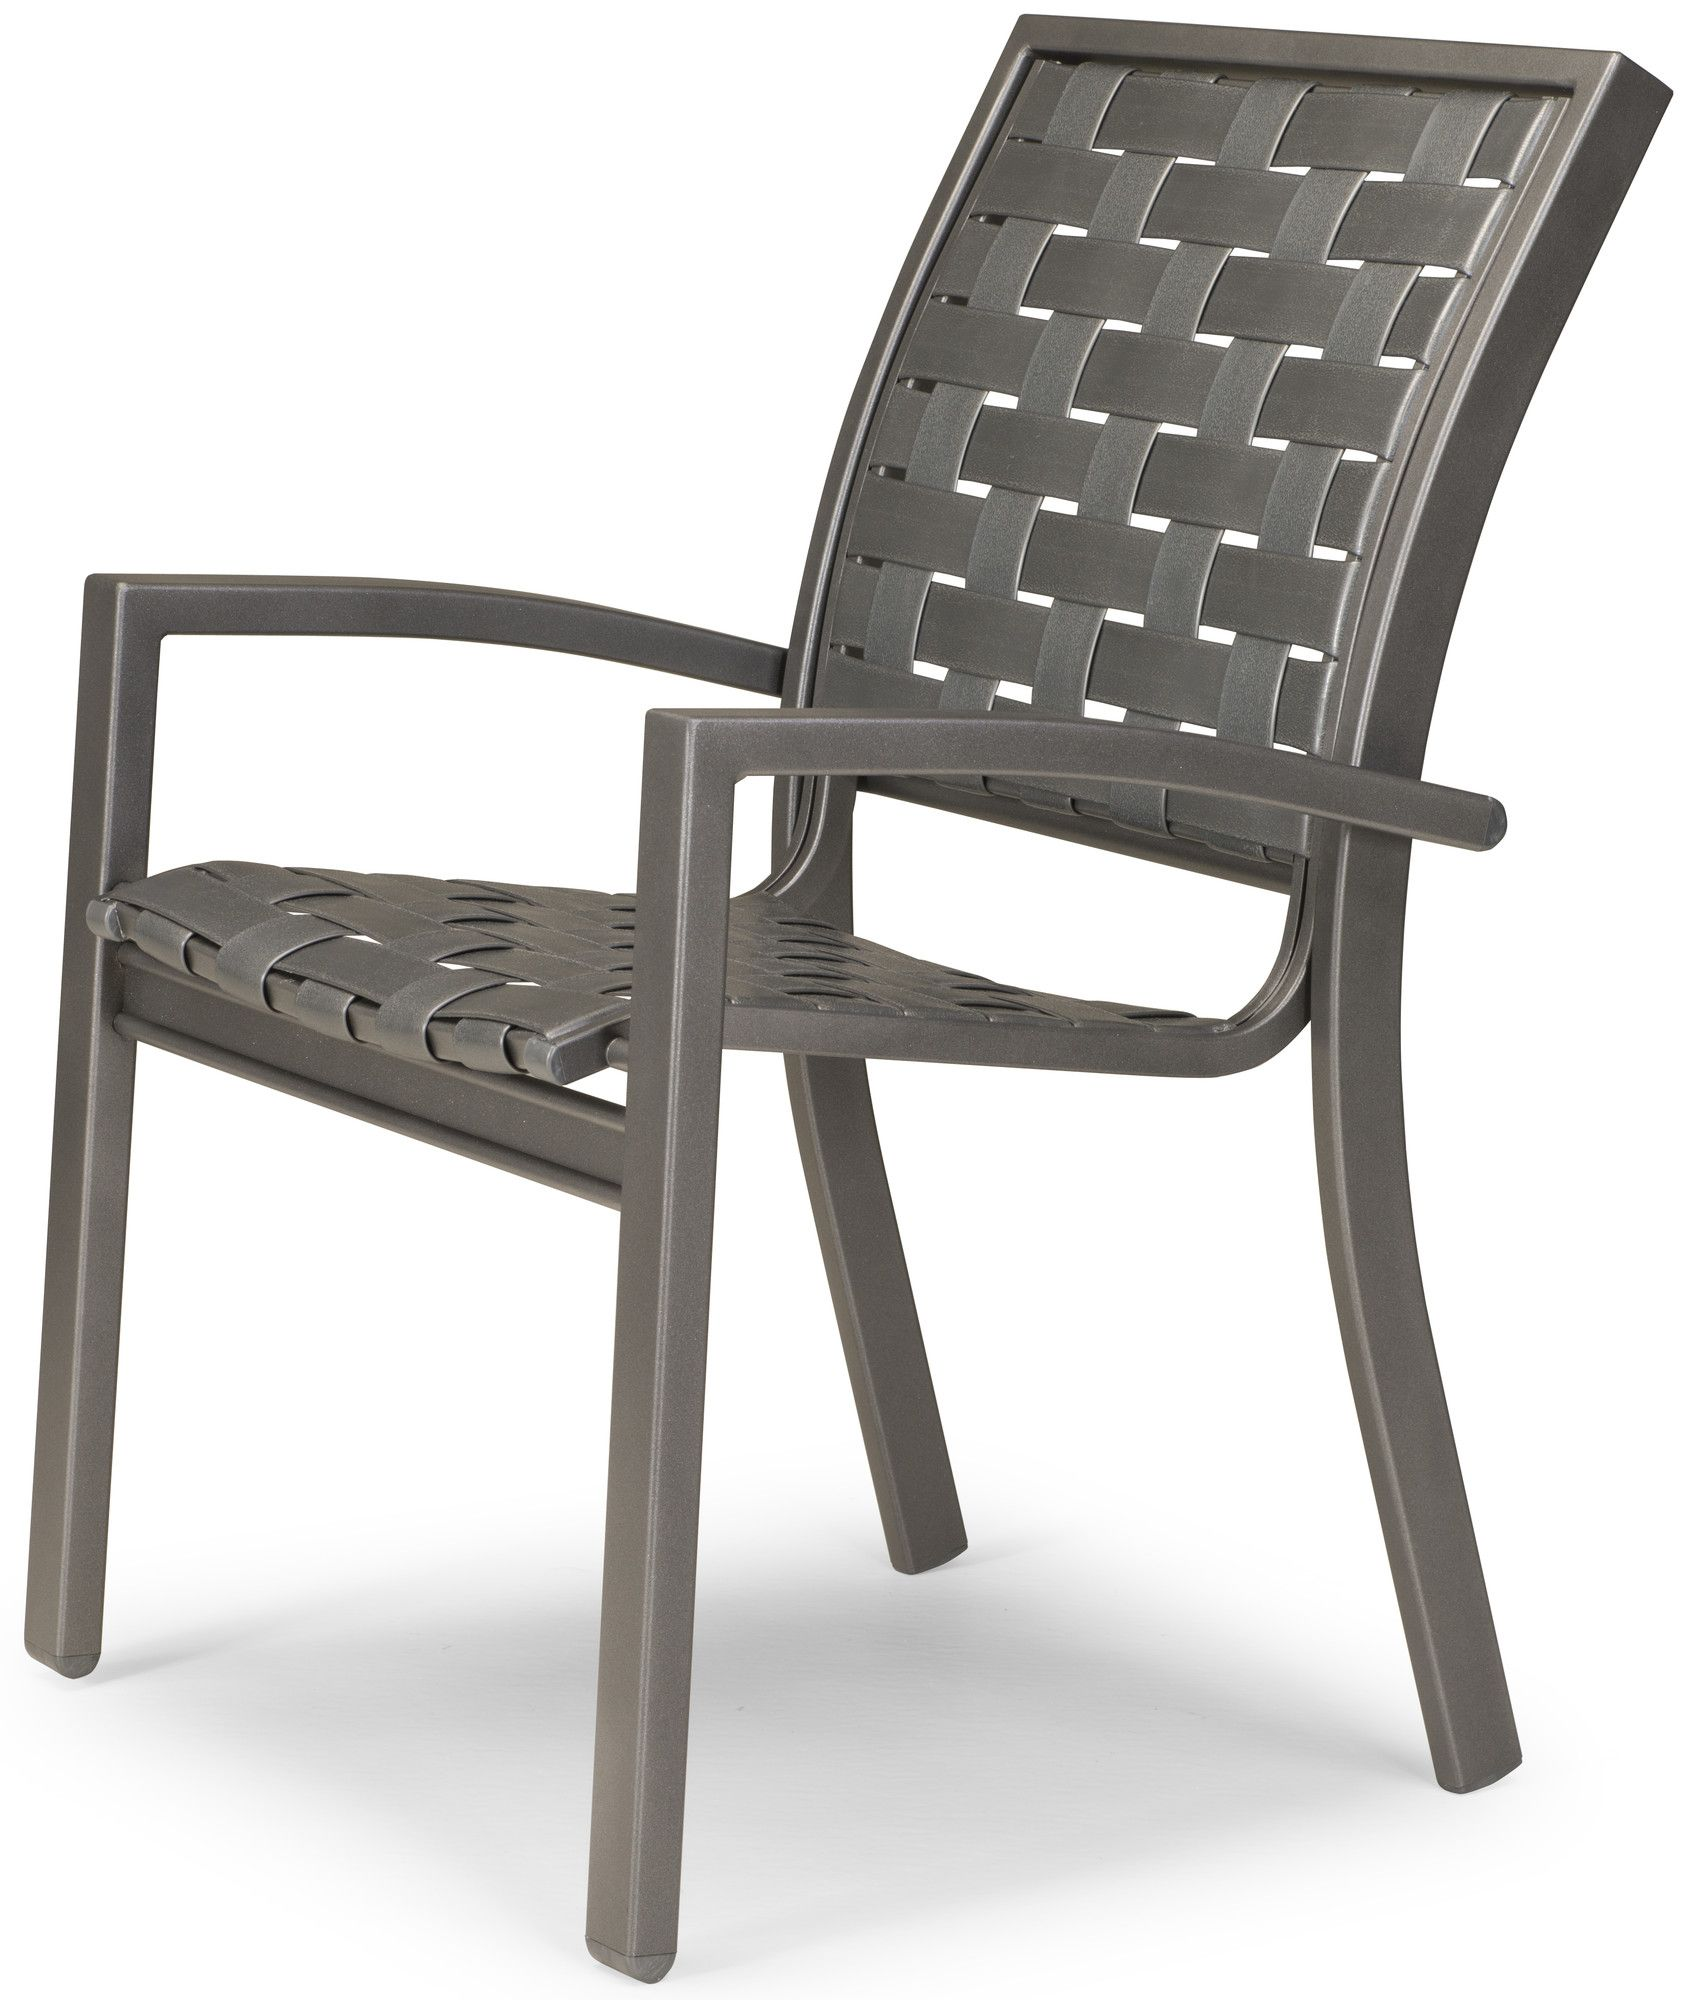 kendall contract cross strap stacking dining arm chair set of 4 rh in pinterest com